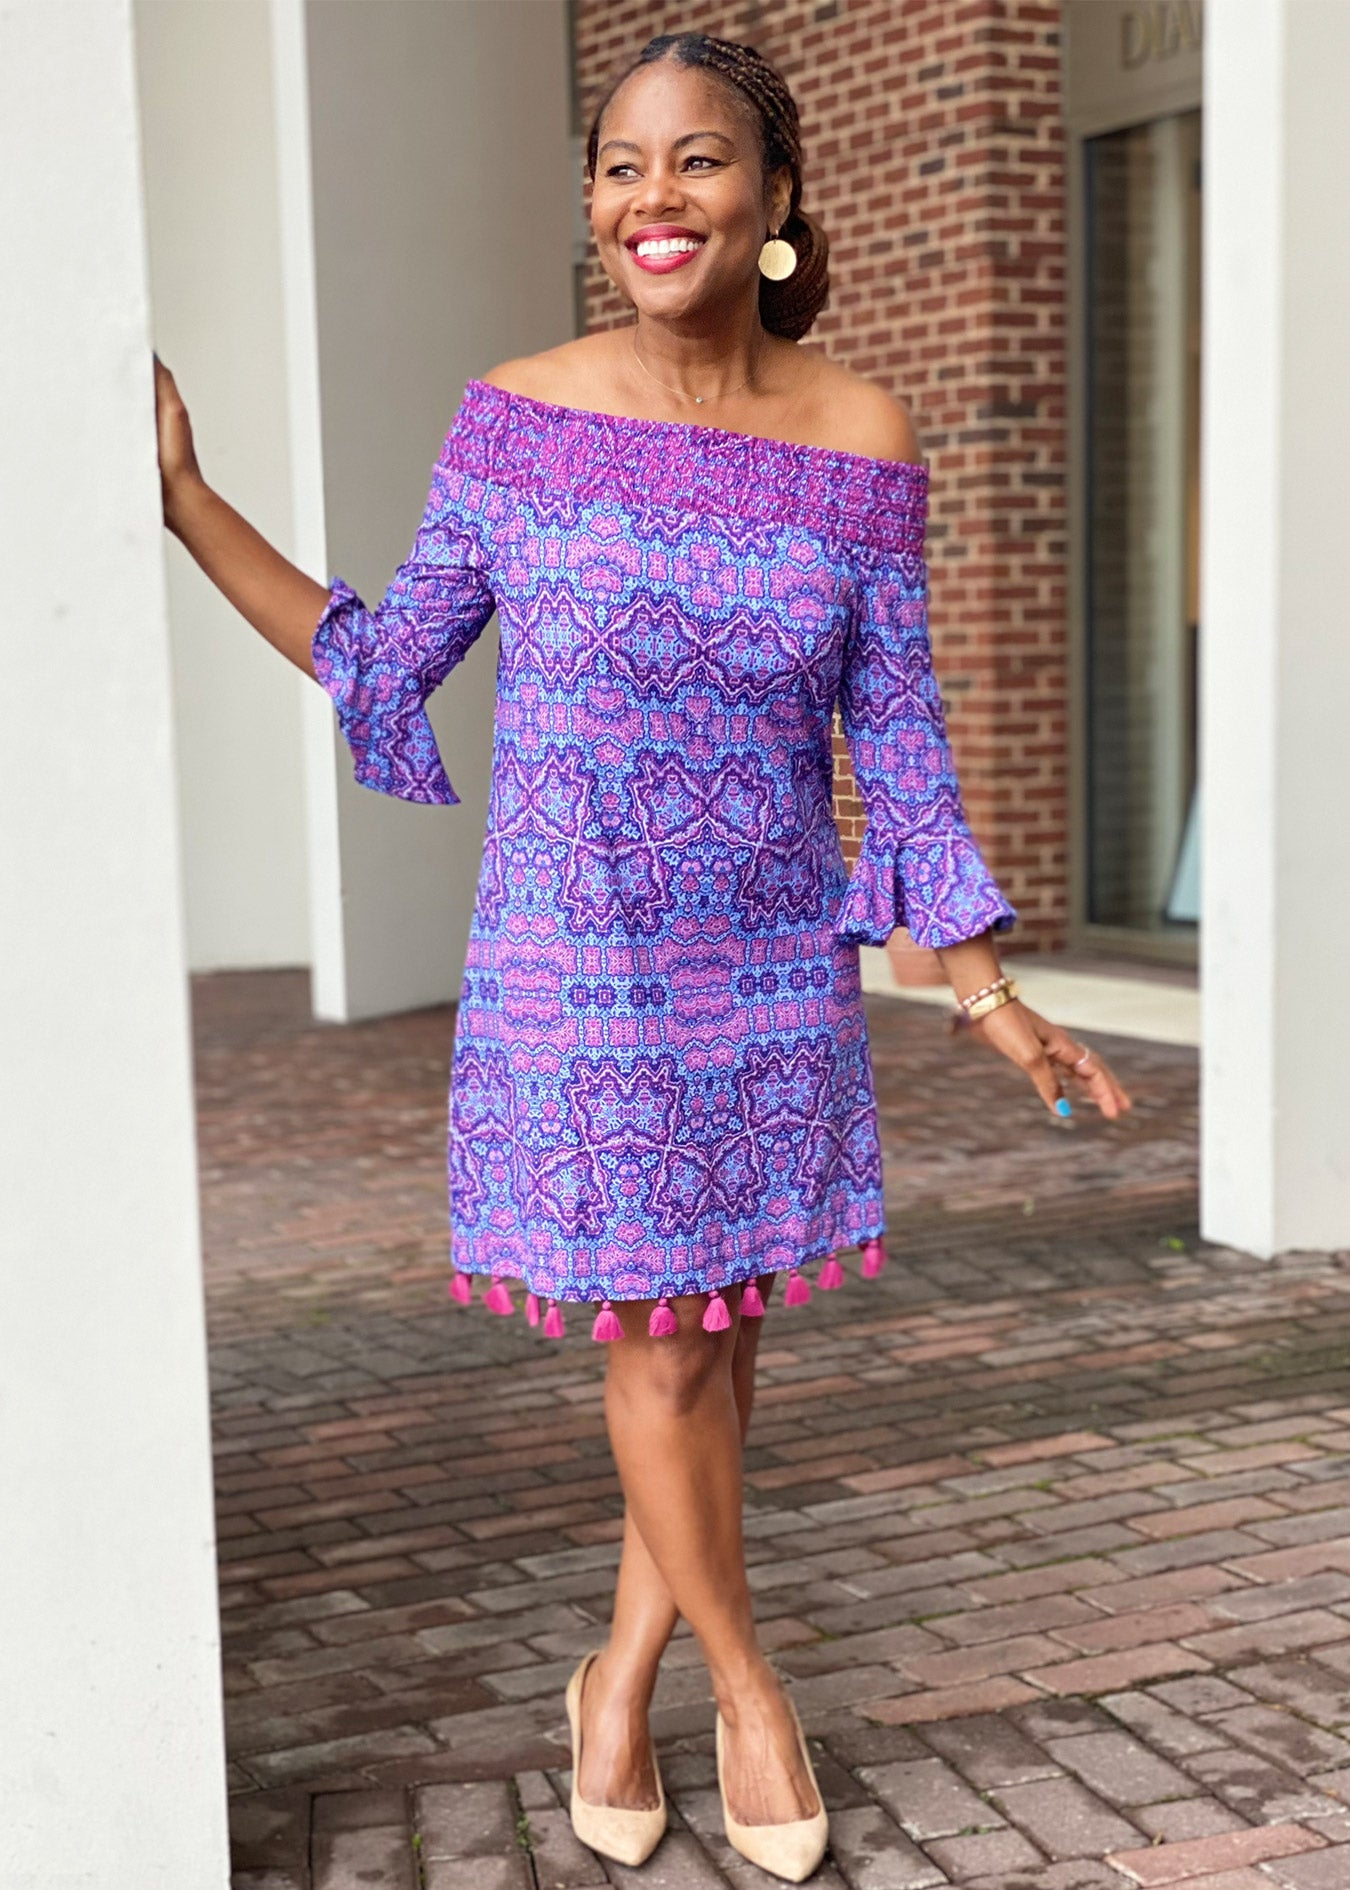 Tonya Parker wearing the Carolina Off the Shoulder Dress with UPF 50+ protection